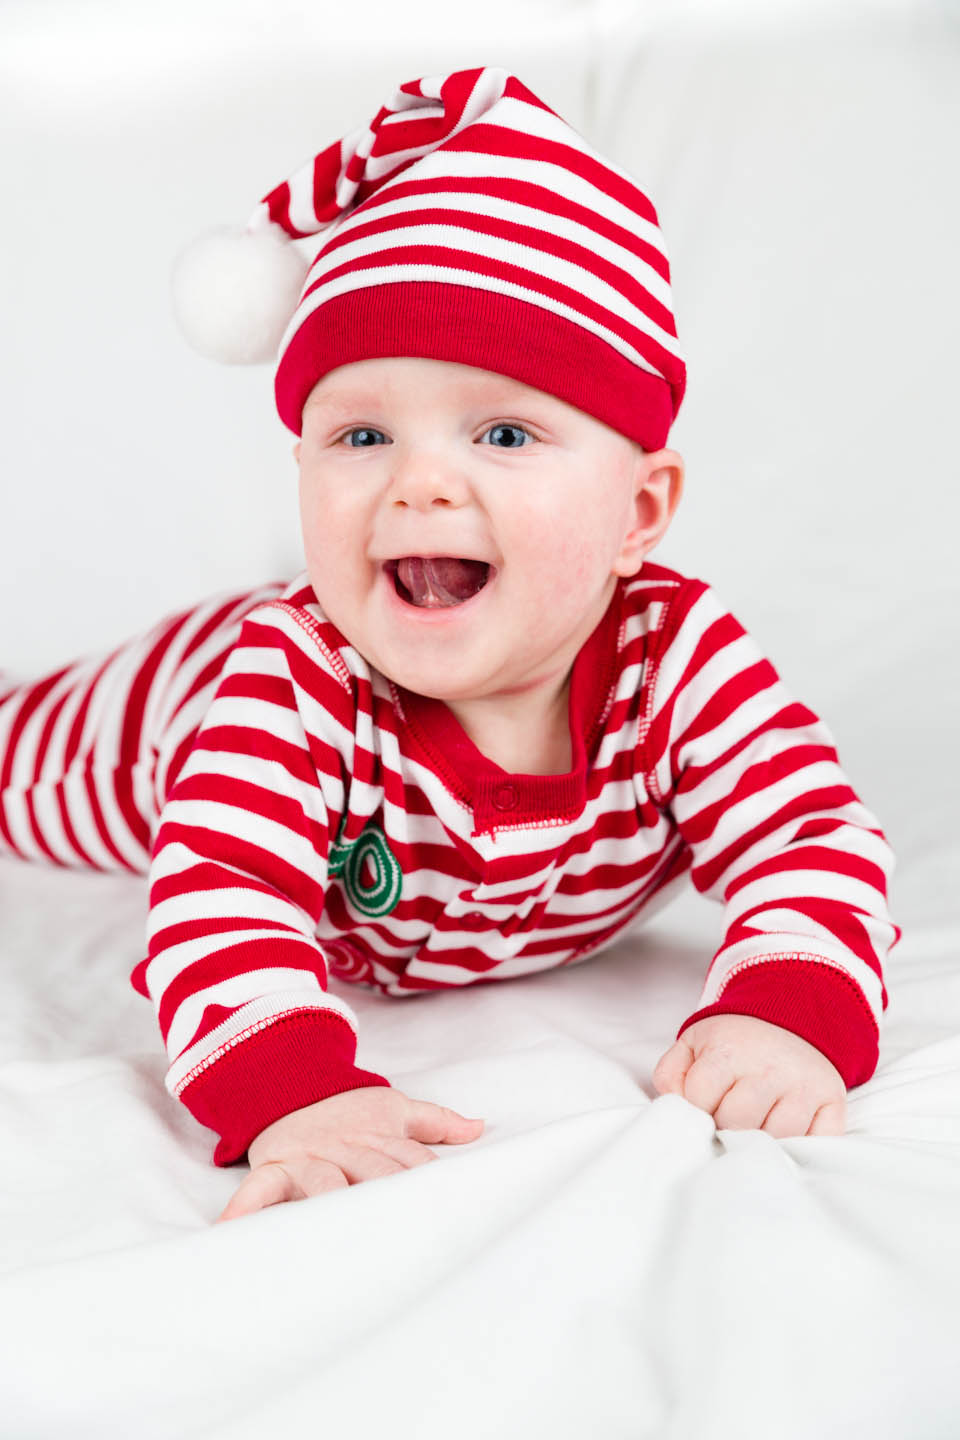 Baby Alex in a Christmas outfit